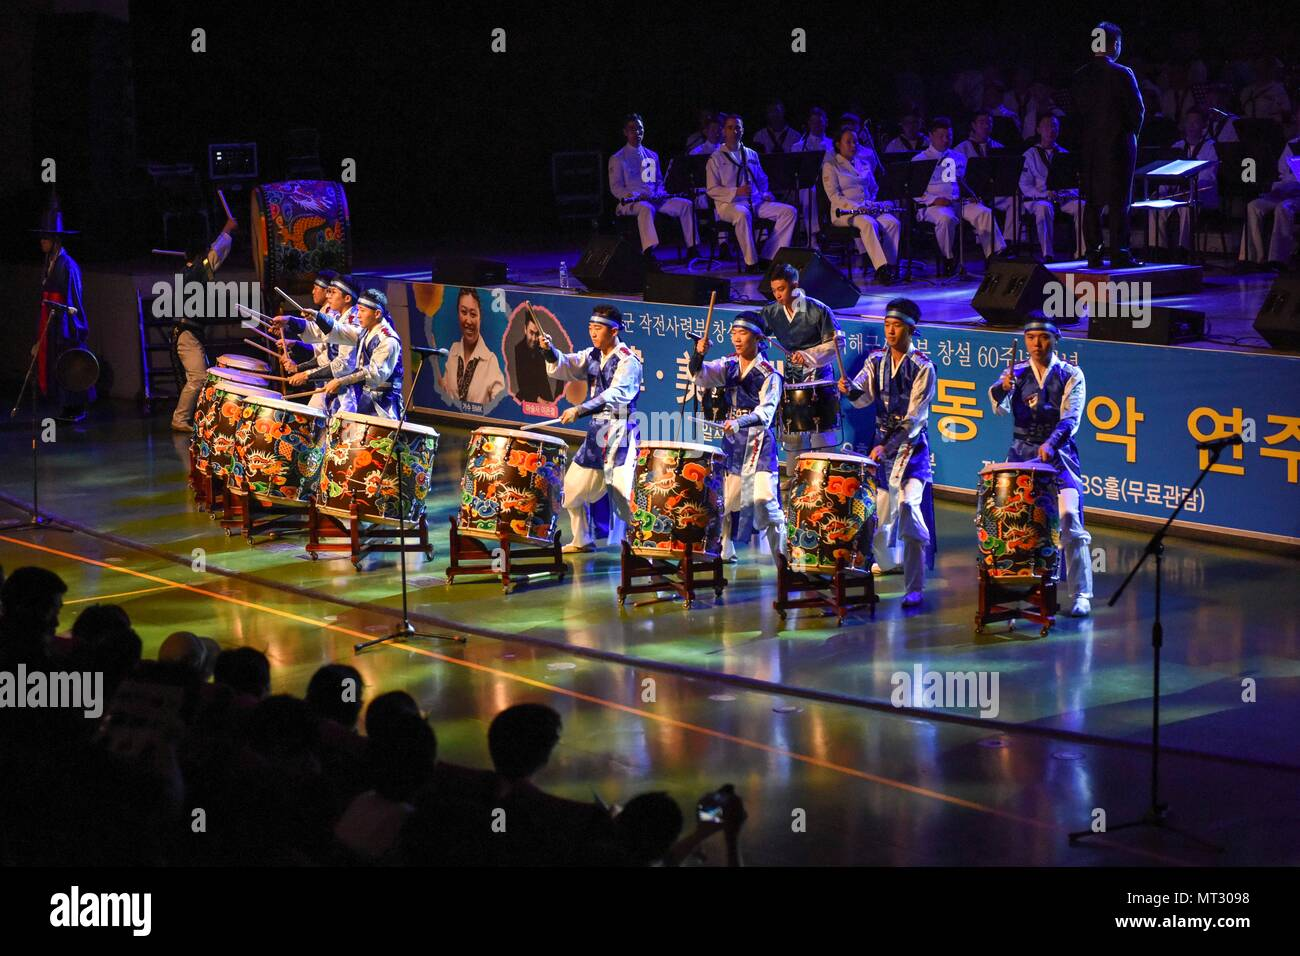 170720-N-WT427-140 BUSAN, Republic of Korea (July 20, 2017) Sailors from the Republic of Korea (ROK) Naval Education and Training Command band performs during a combined ROK-U.S. anniversary celebration. The performance was held to celebrate Commander, Naval Forces Korea's (CNFK) 60th anniversary and ROK Fleet's 65th anniversary. CNFK is the U.S. Navy's representative in the ROK, providing leadership and expertise in naval matters to improve institutional and operational effectiveness between the two navies and to strengthen collective security efforts in Korea and the region. (U.S. Navy photo Stock Photo